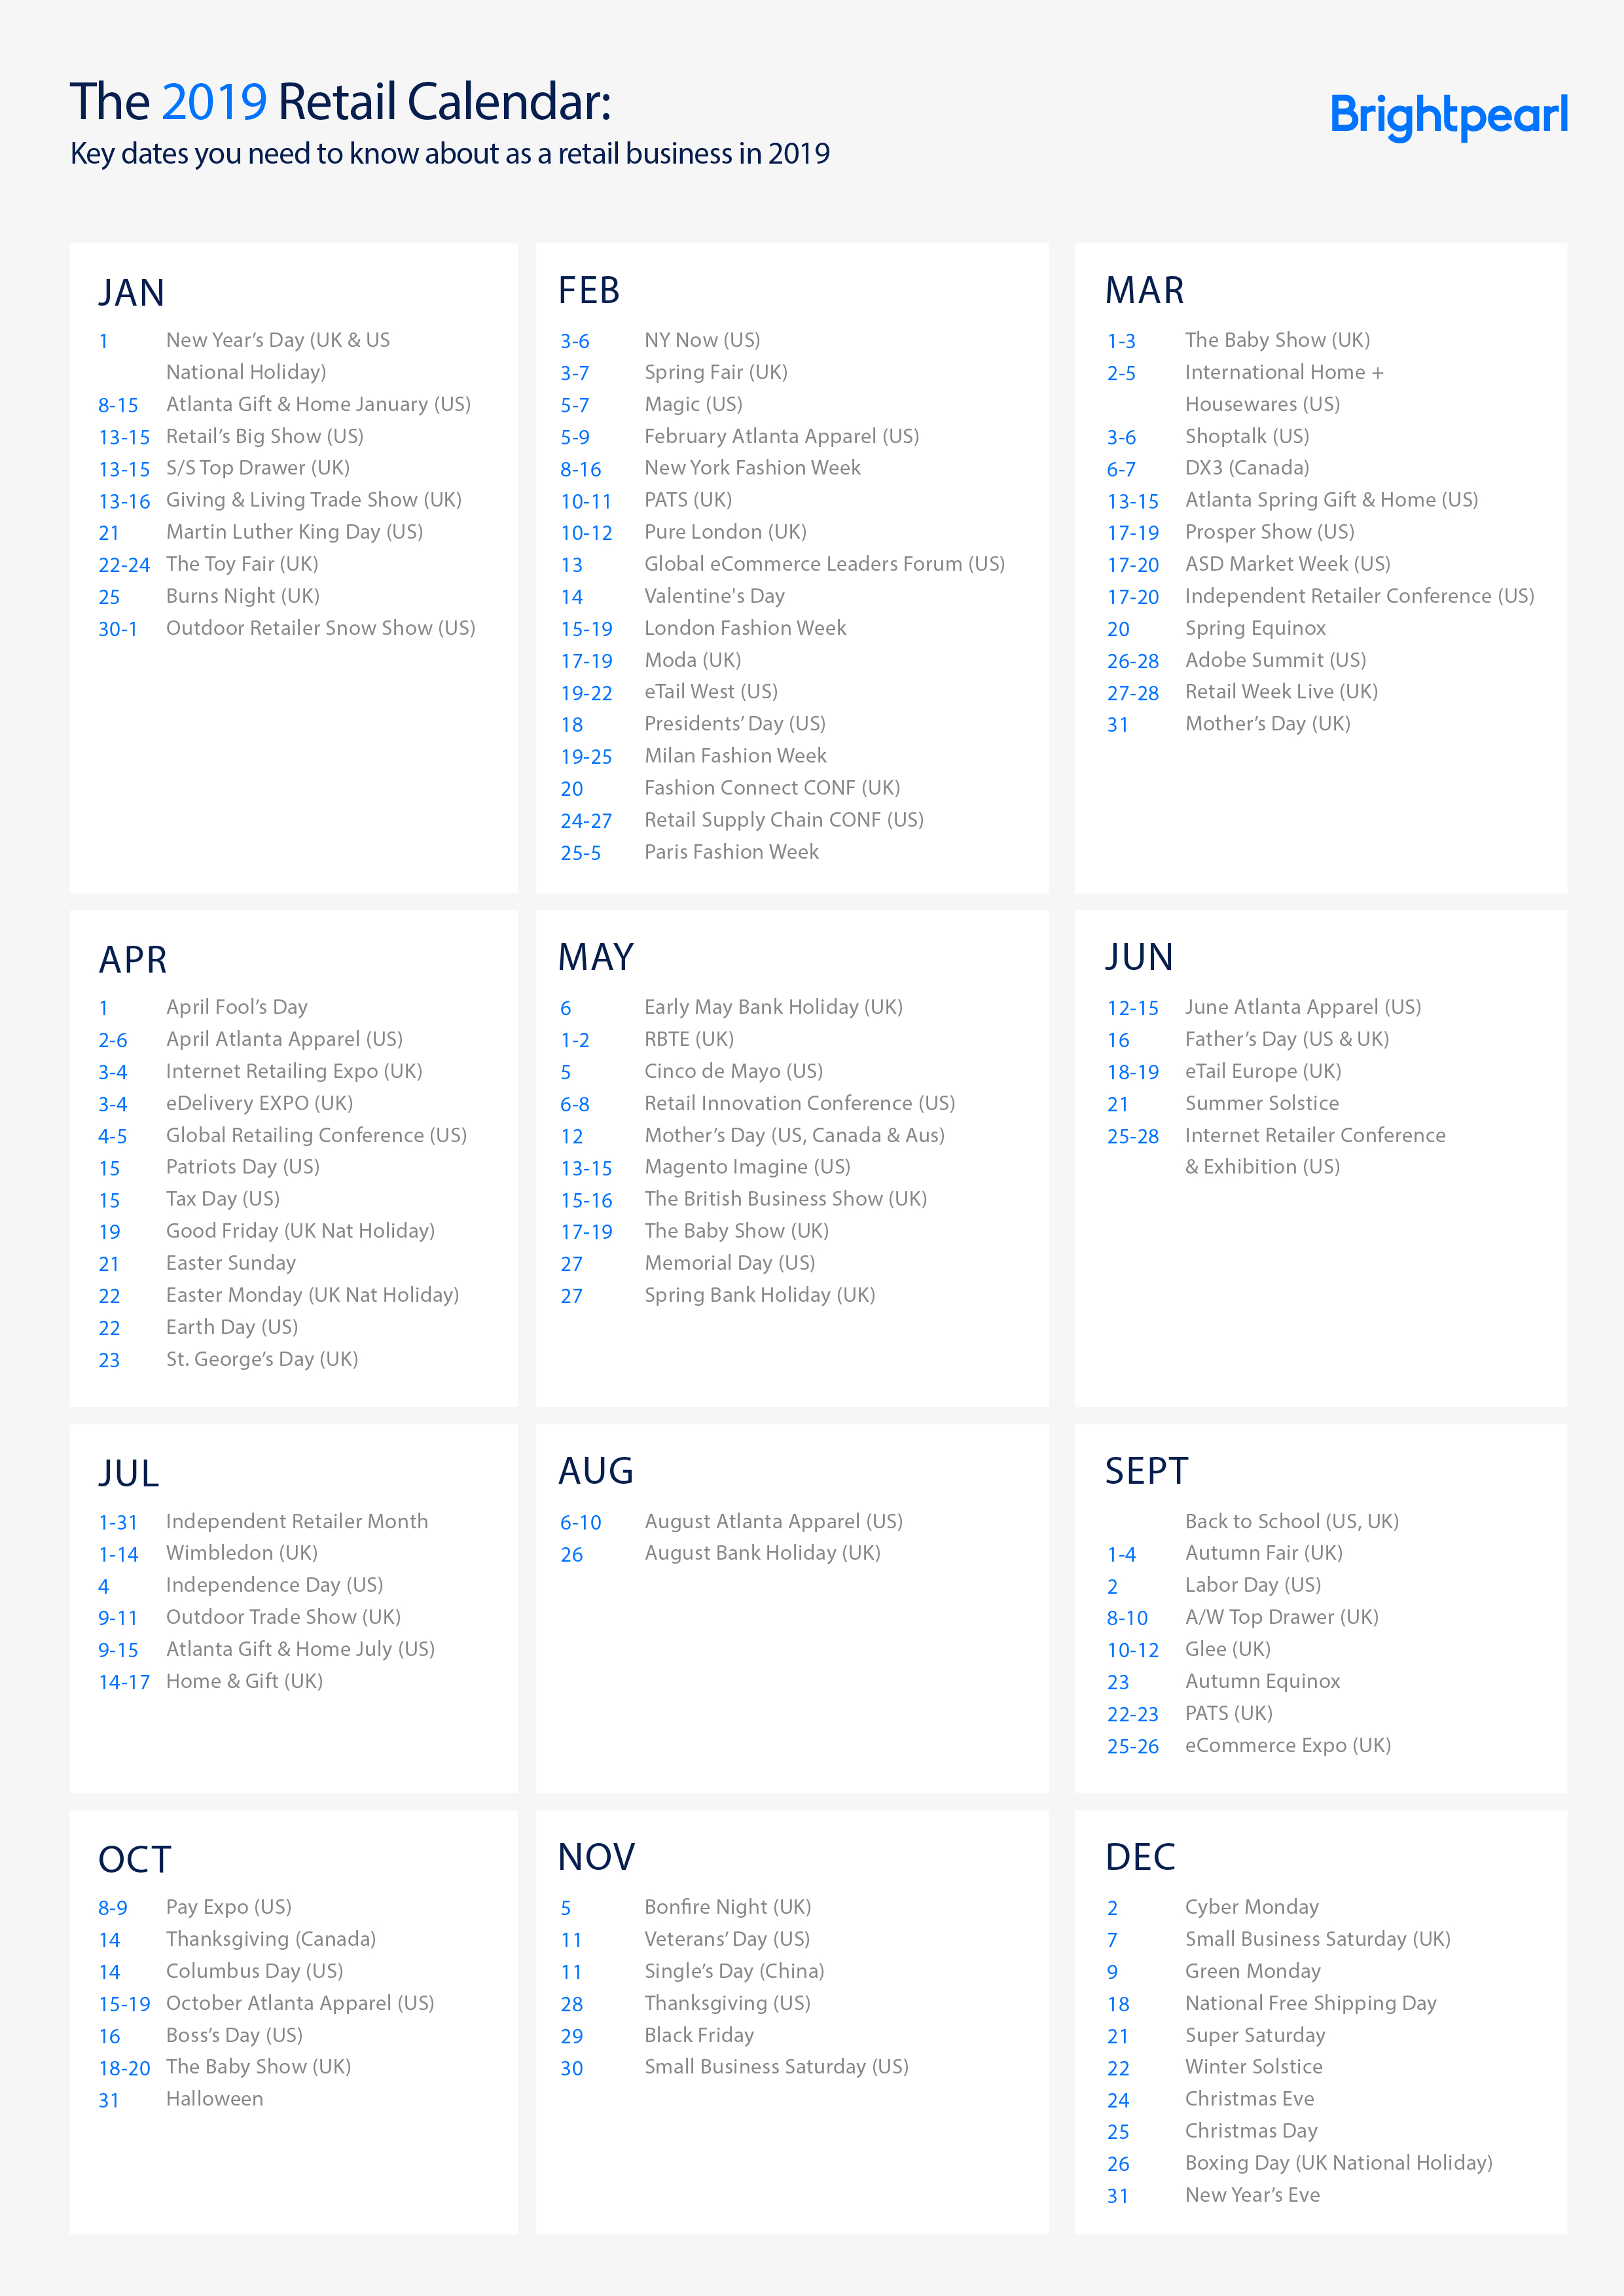 The 2019 Retail Calendar: Key Dates You Need To Know About